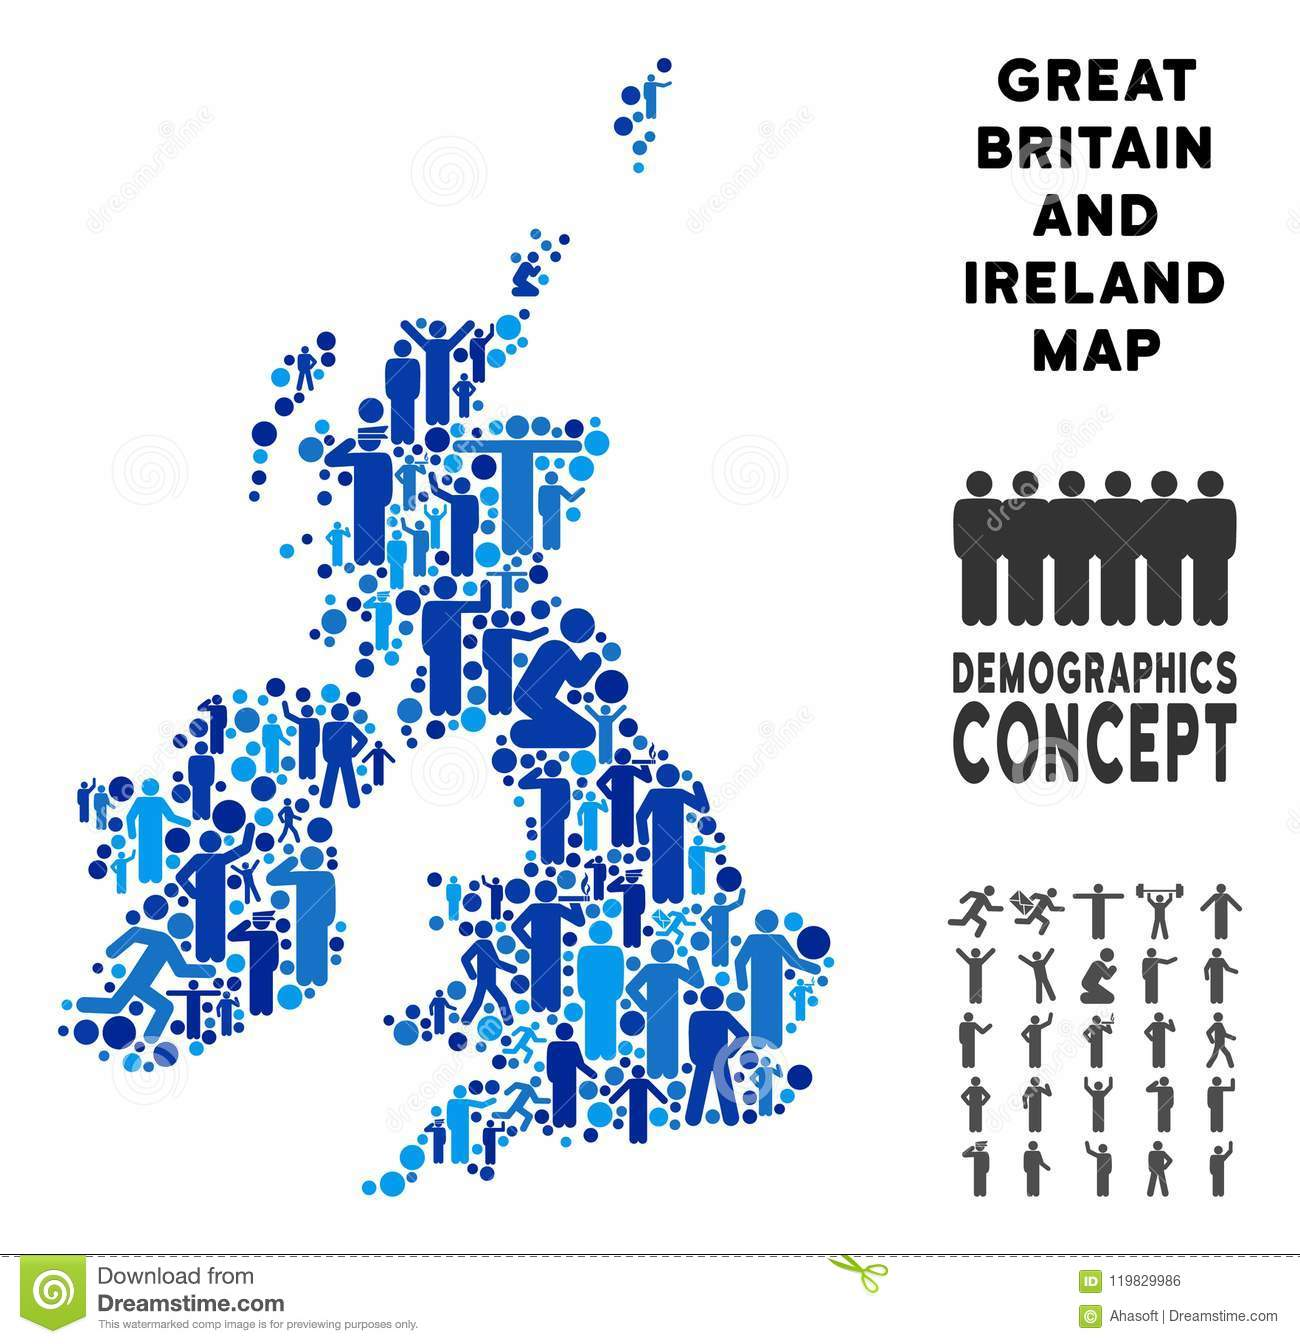 Britain England Map.Demographics Great Britain And Ireland Map Stock Vector